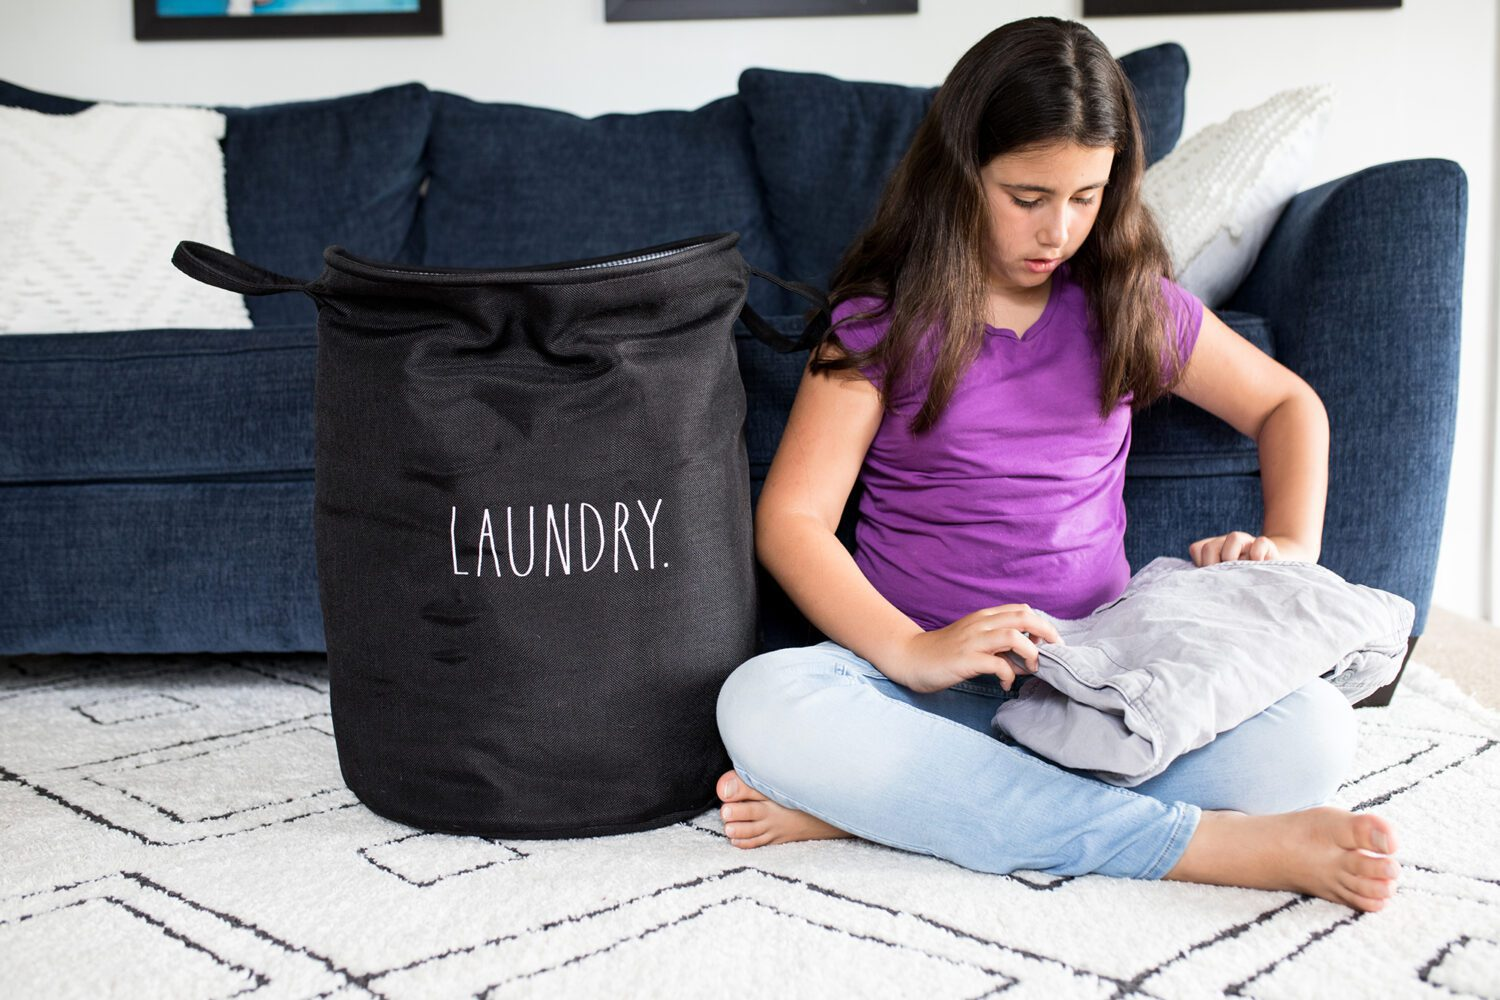 girl folding laundry next to a Rae Dunn laundry basket